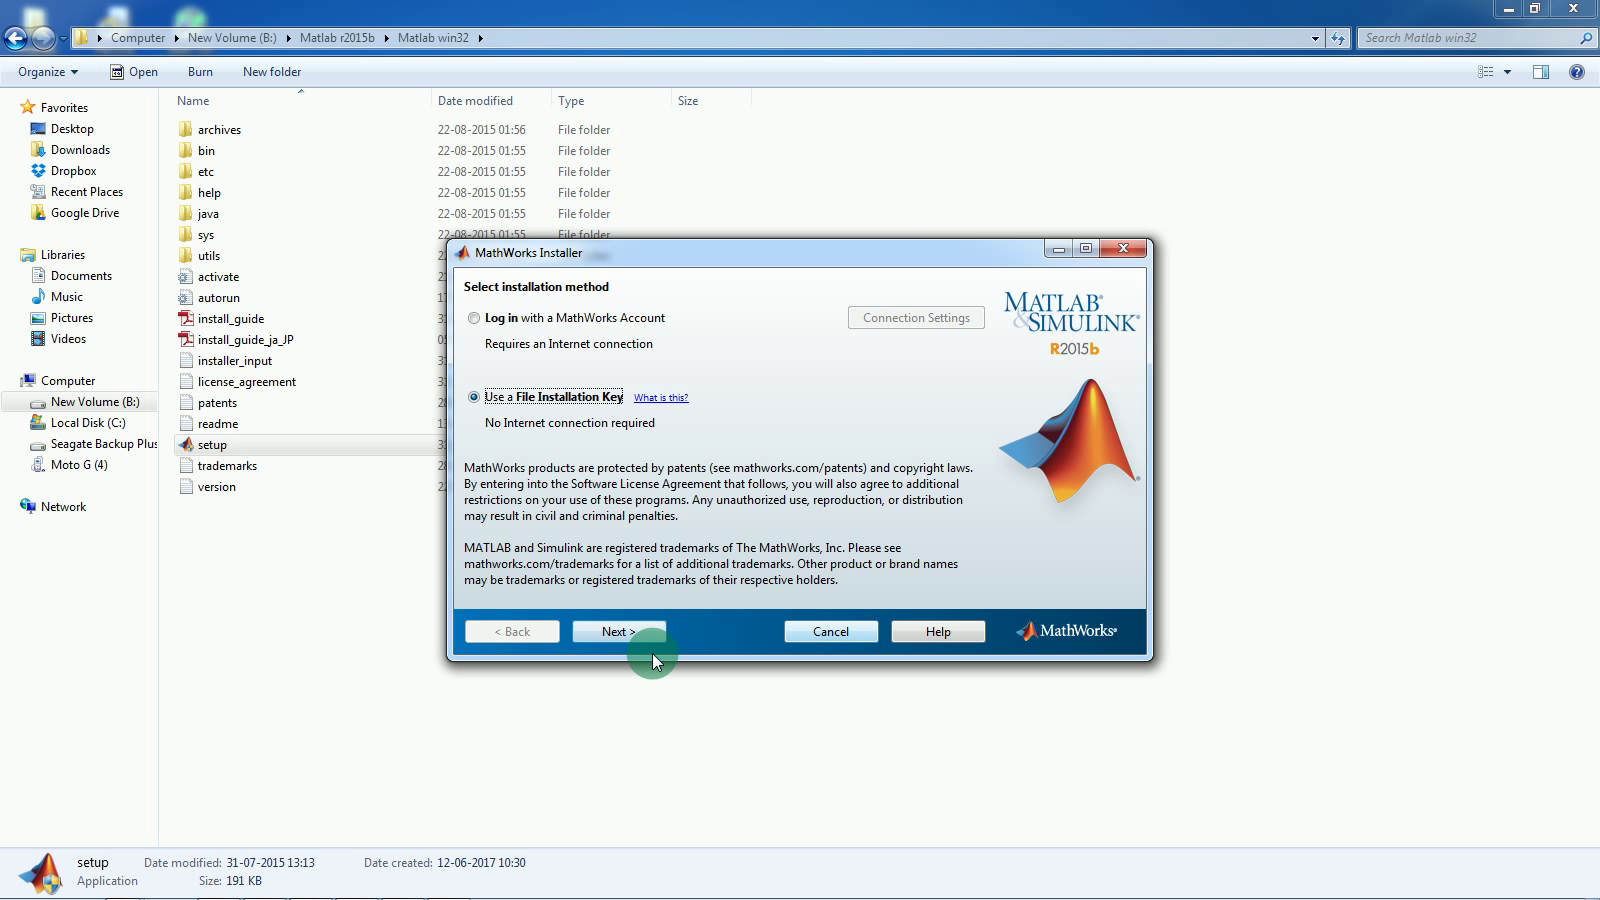 How to install matlab on ubuntu 18. 04 bionic beaver linux.